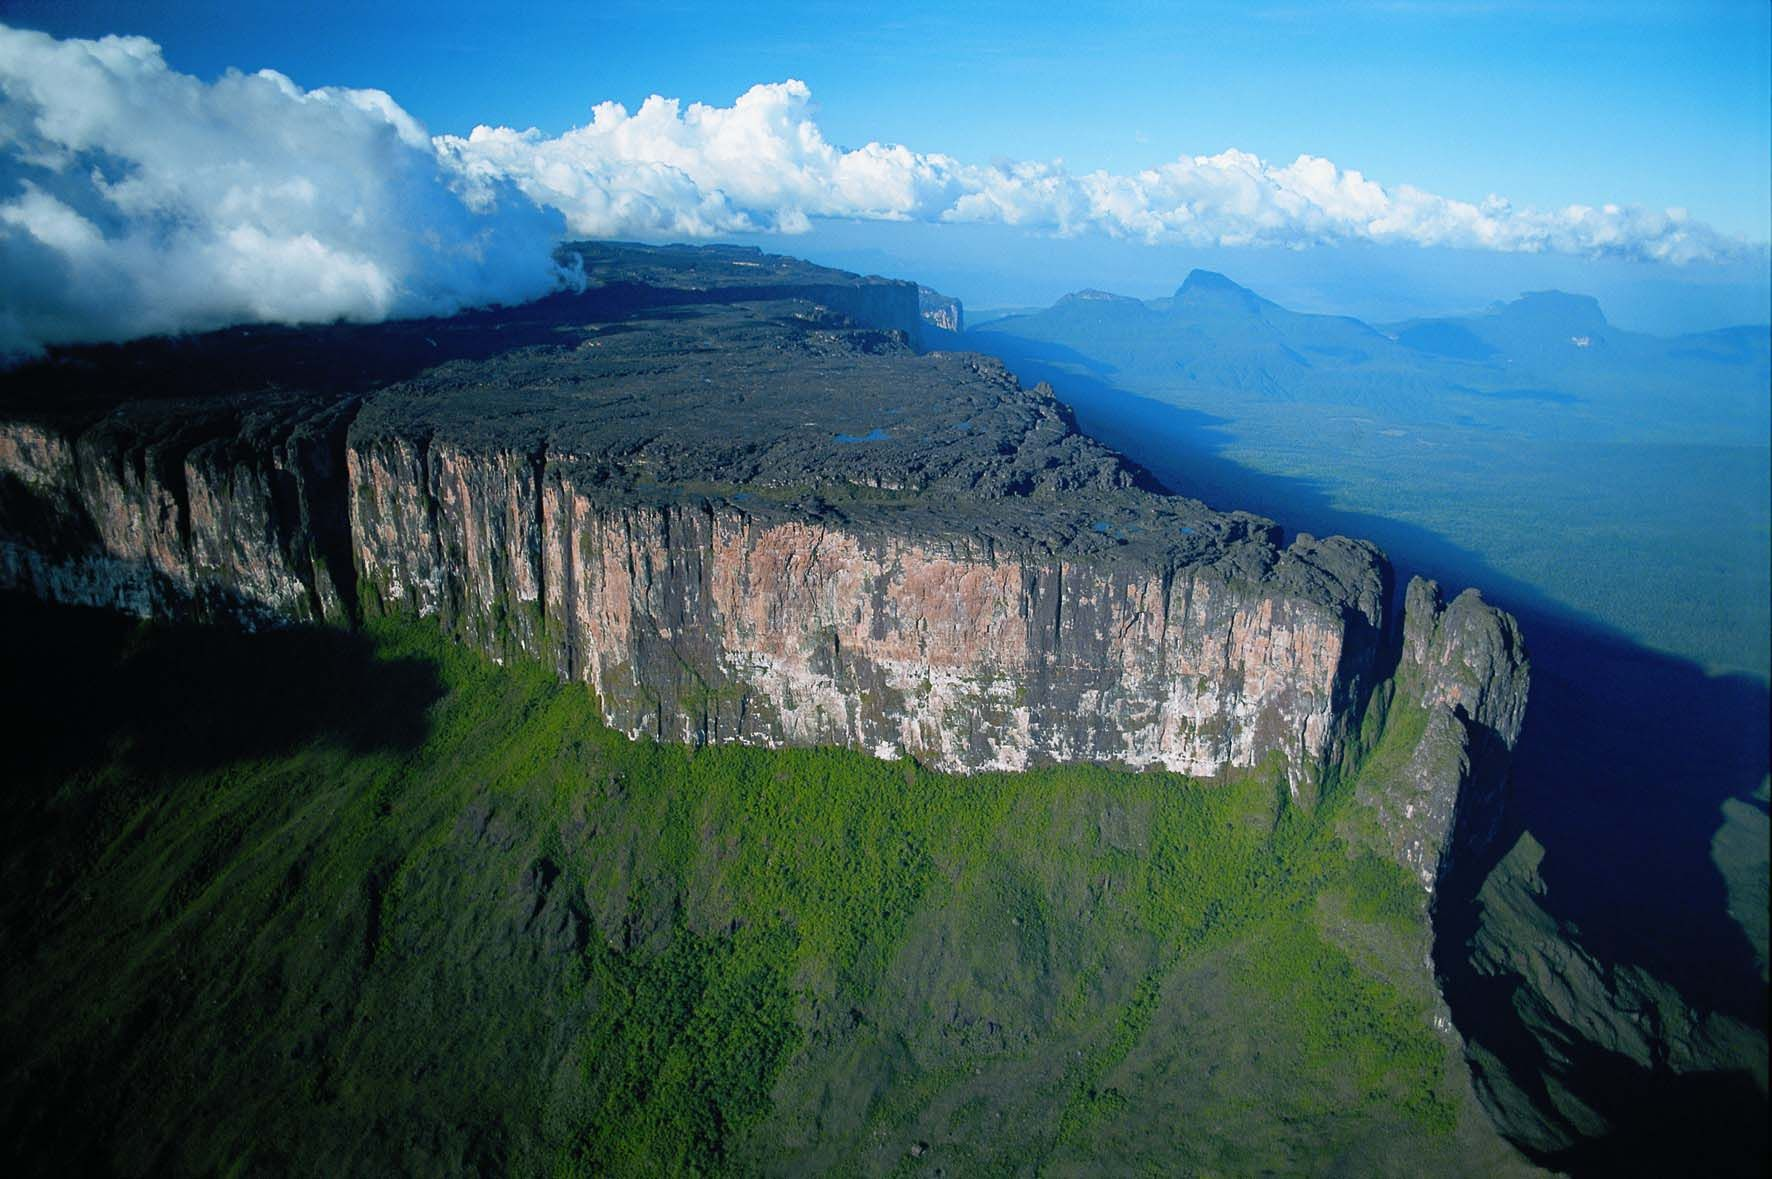 Canaima National Park, Venezuela: Breath-taking scenery characterised by table-top mountains [known as 'Tepuis'], savannah and many waterfalls including 'Angel Falls', the worlds highest uninterrupted waterfall, make Canaima National Park a beautiful stop on an itinerary to Venezuela.   Enjoy an overflight of Angel Falls where you fly over the sheer cliffs and view the waterfall from the top and from the bottom, a spectacular experience.